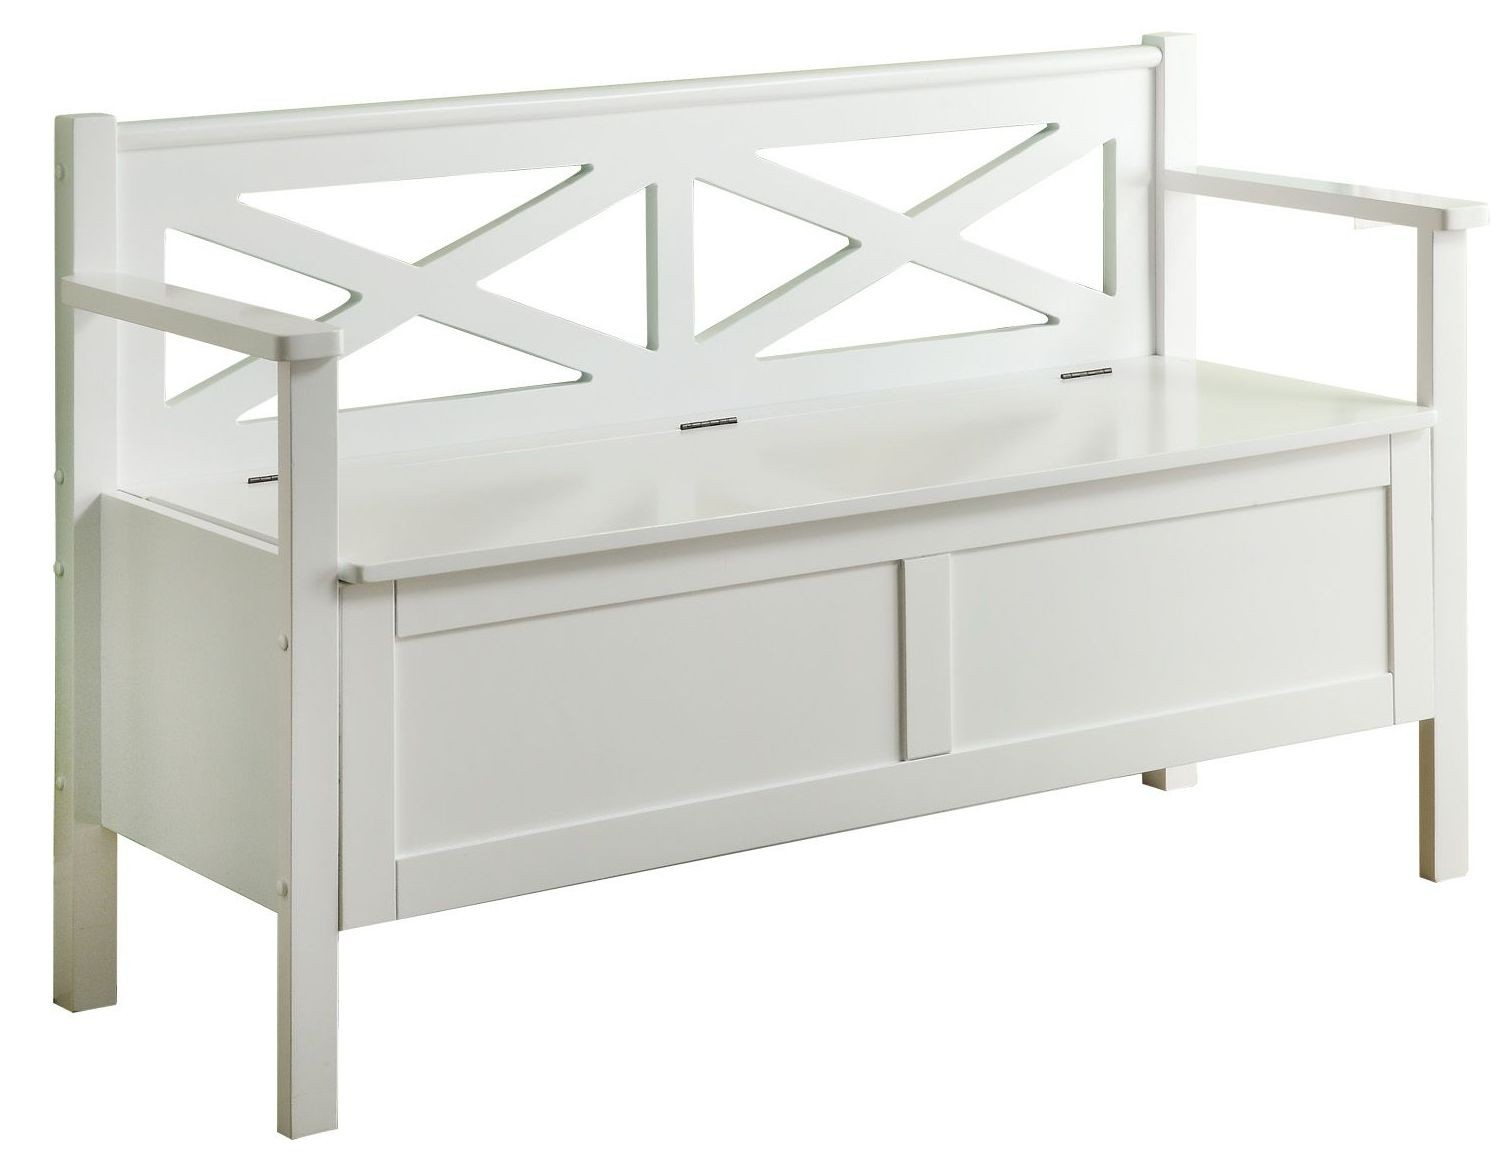 4504 White Solid Wood Storage Bench From Monarch I 4504 Coleman Furniture